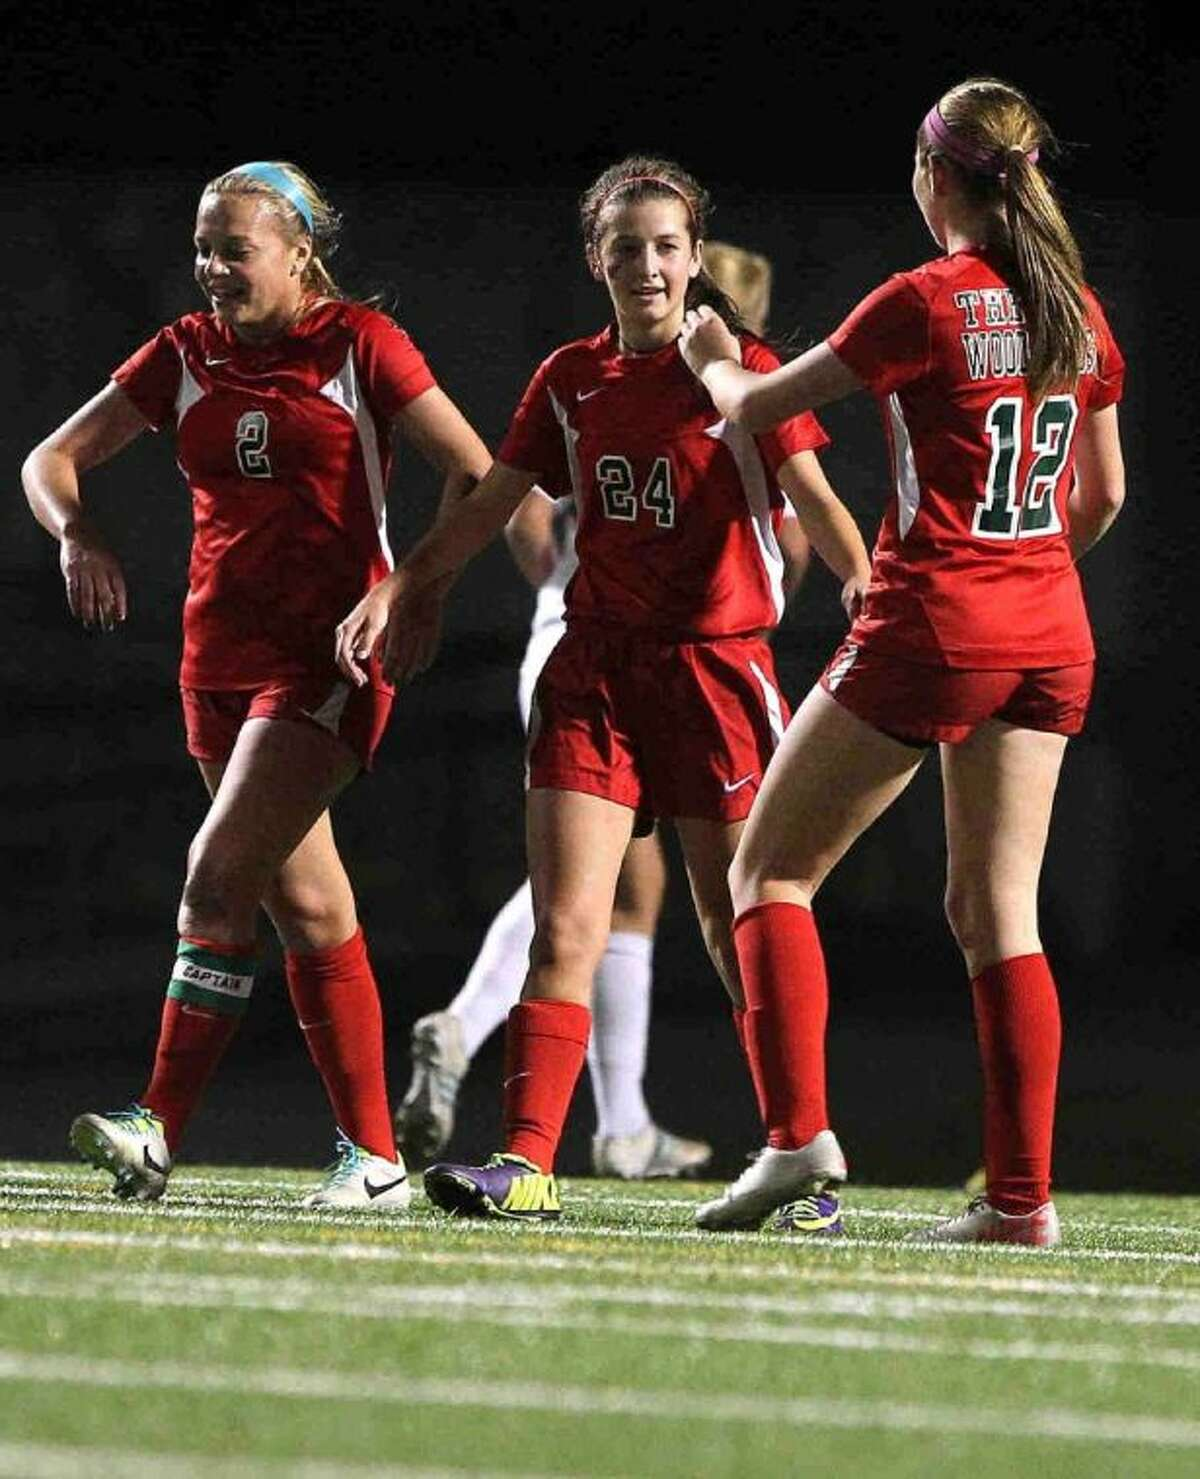 The Woodlands' Kylie Dodson (24) ` celebrates with teammates after scoring a goal in the first half of Friday's match against Conroe at Buddy Moorhead Memorial Stadium. To view or purchase this photo and others like it, visit HCNpics.com.